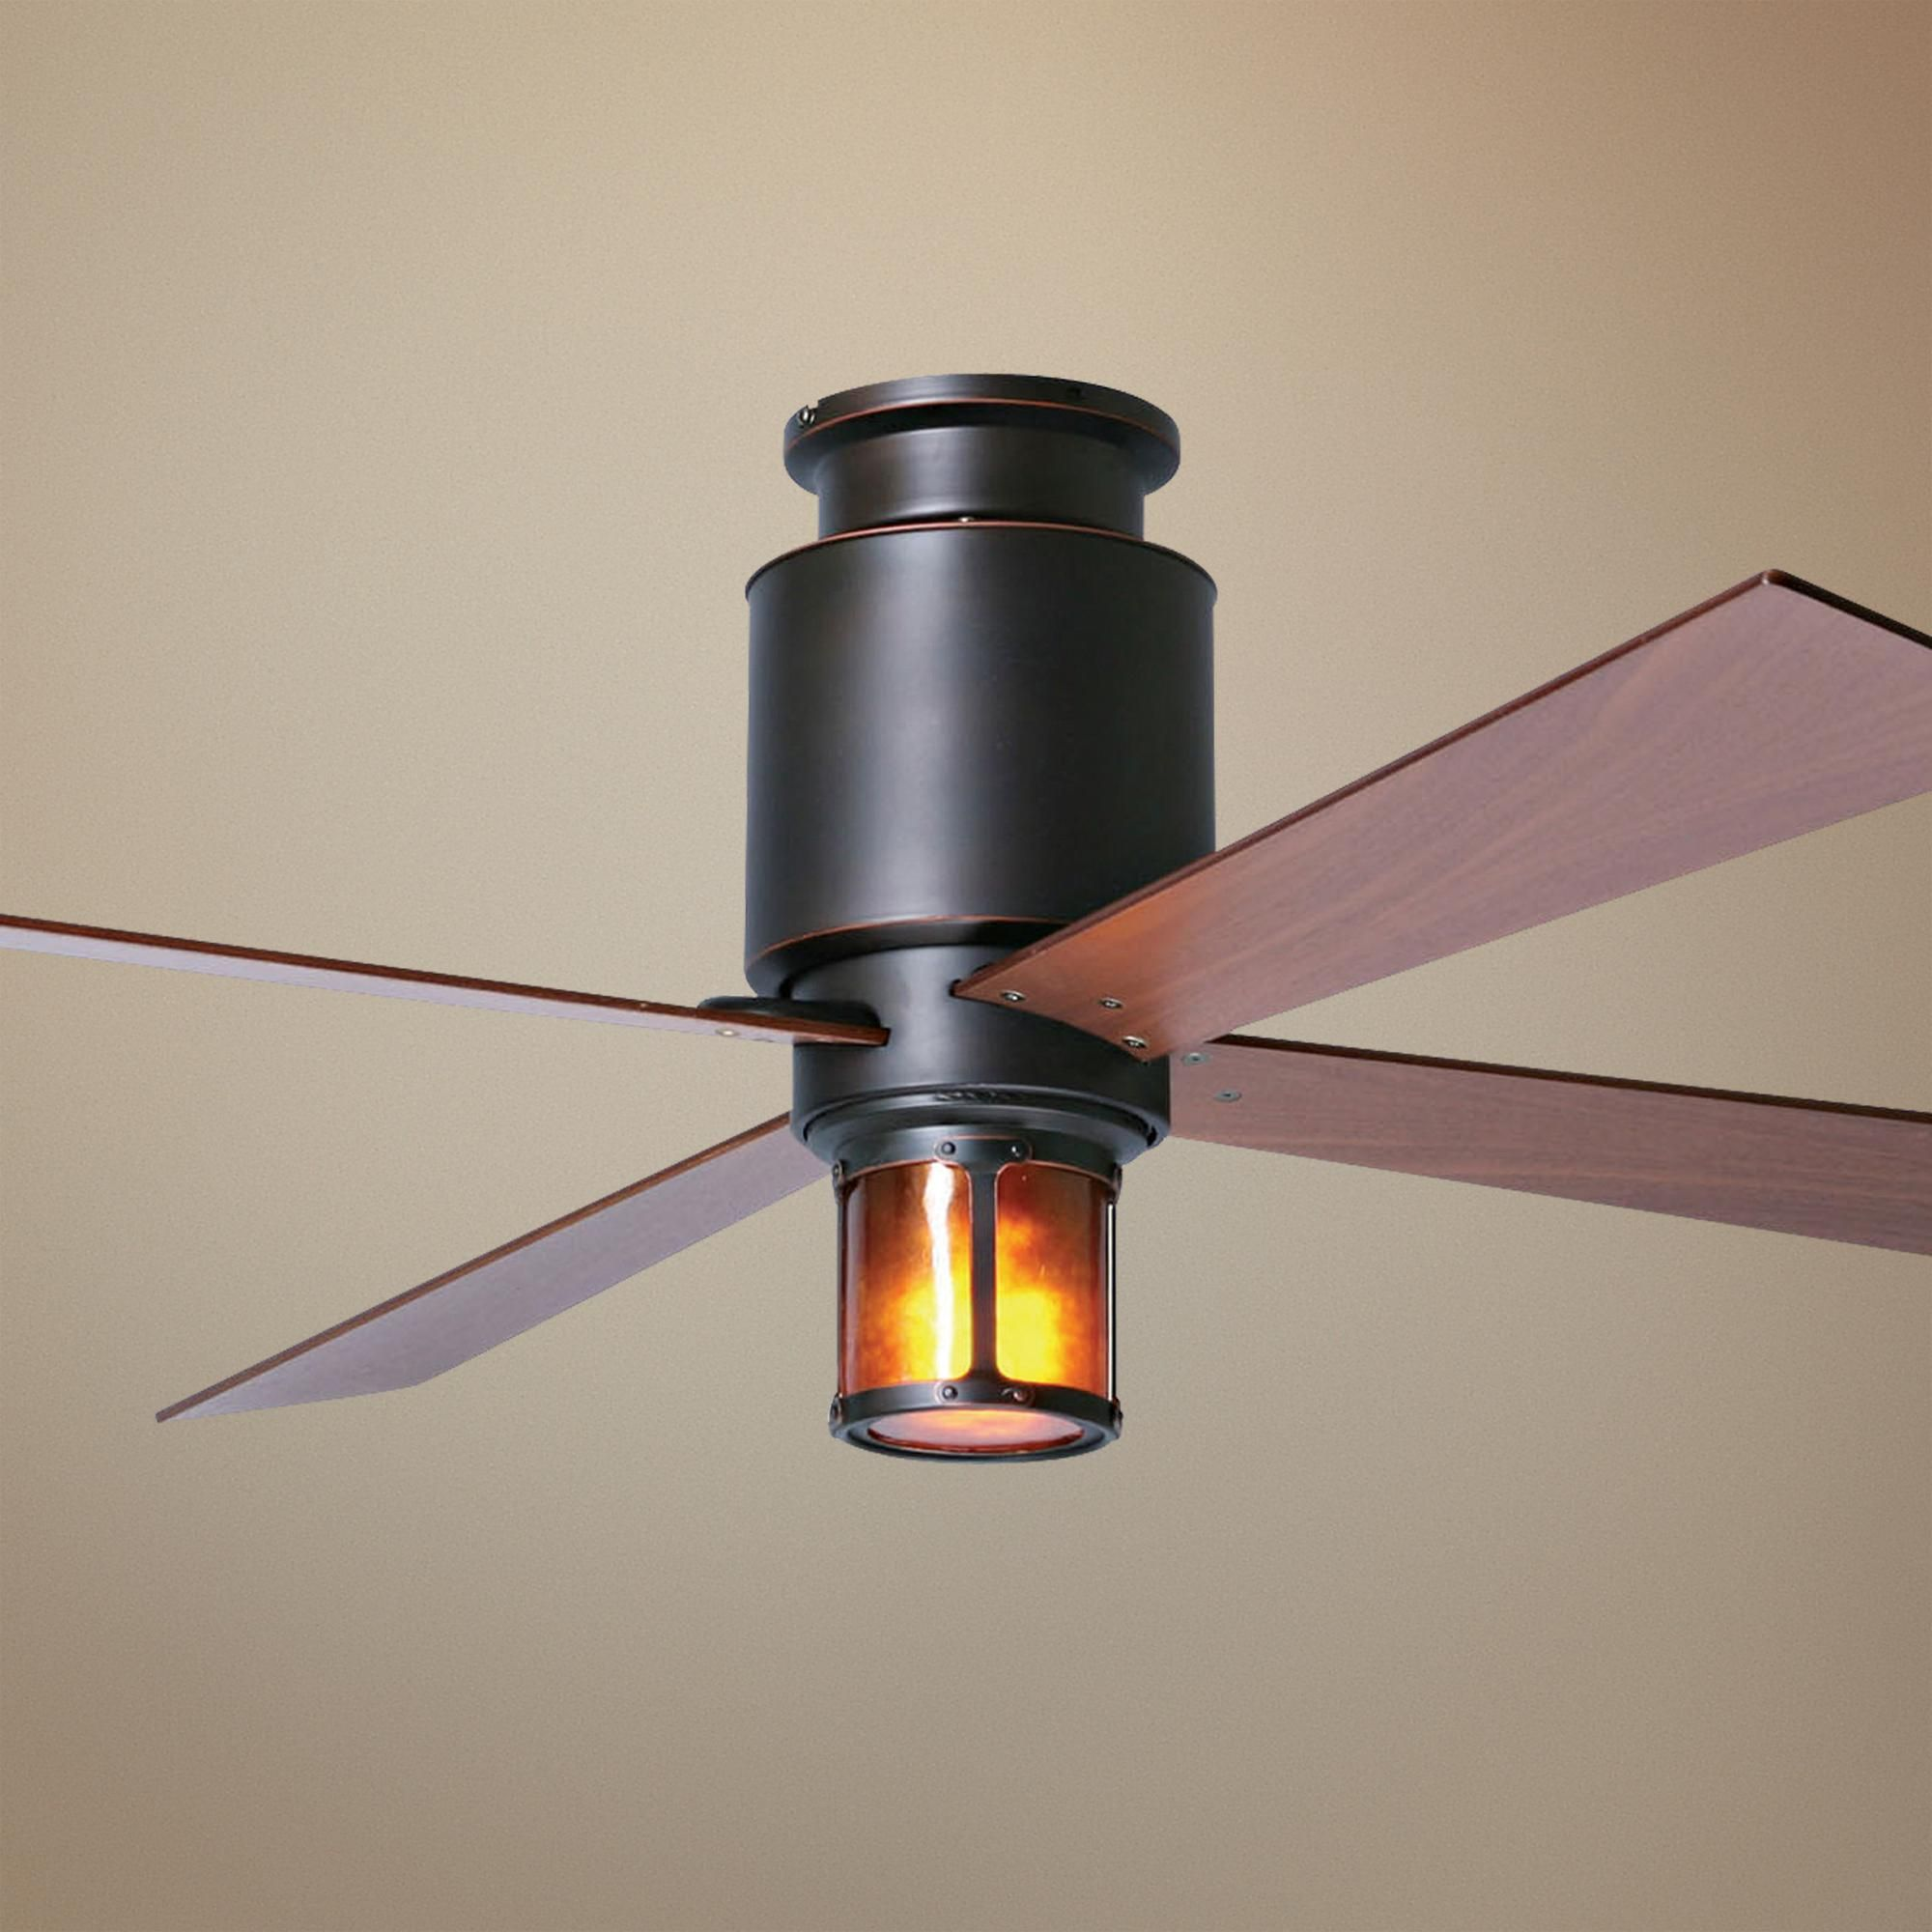 33+ Arts and crafts ceiling fans with lights info